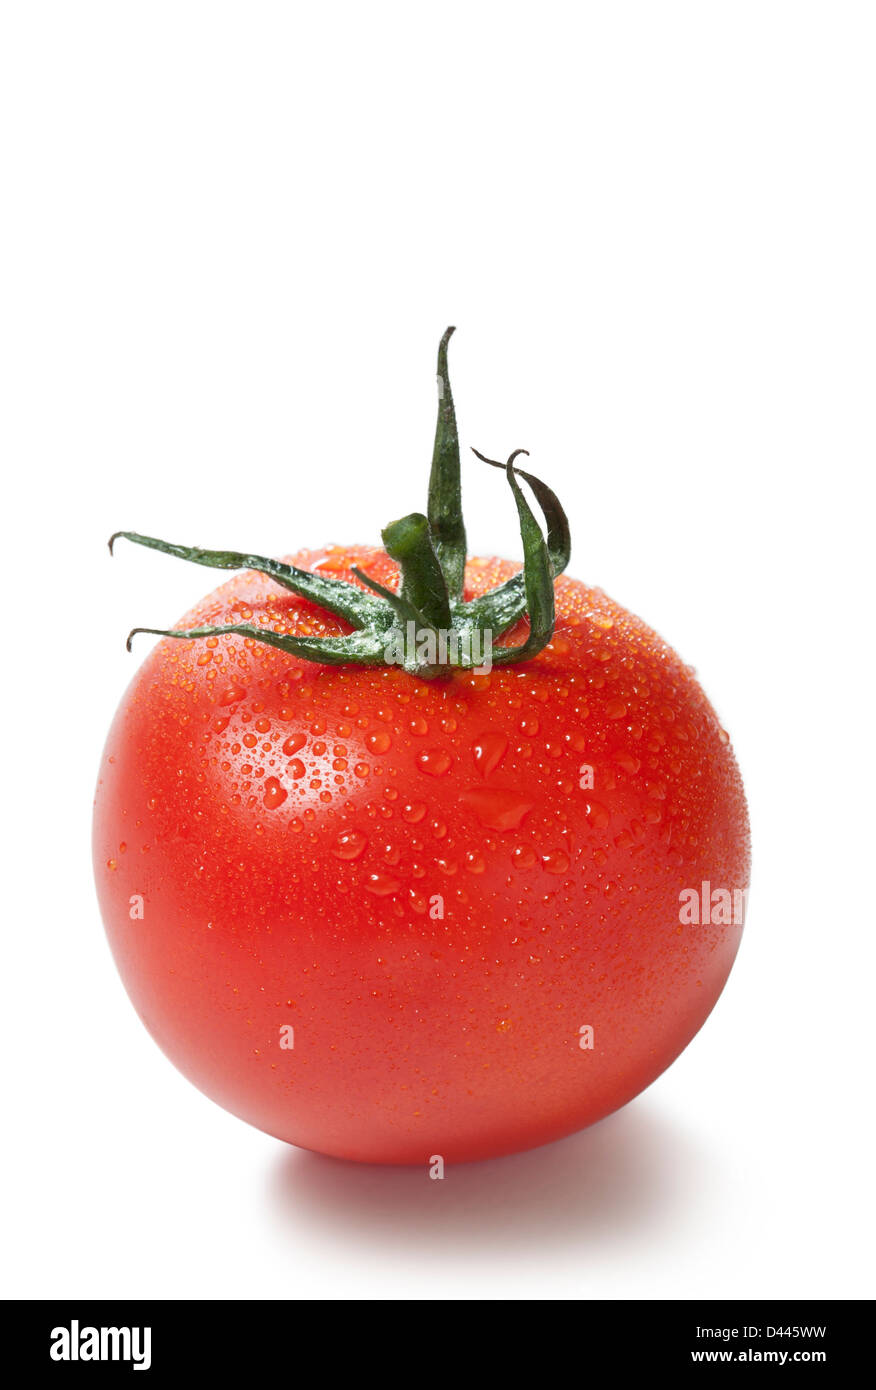 Tomato with dew on a white background, cut out - Stock Image